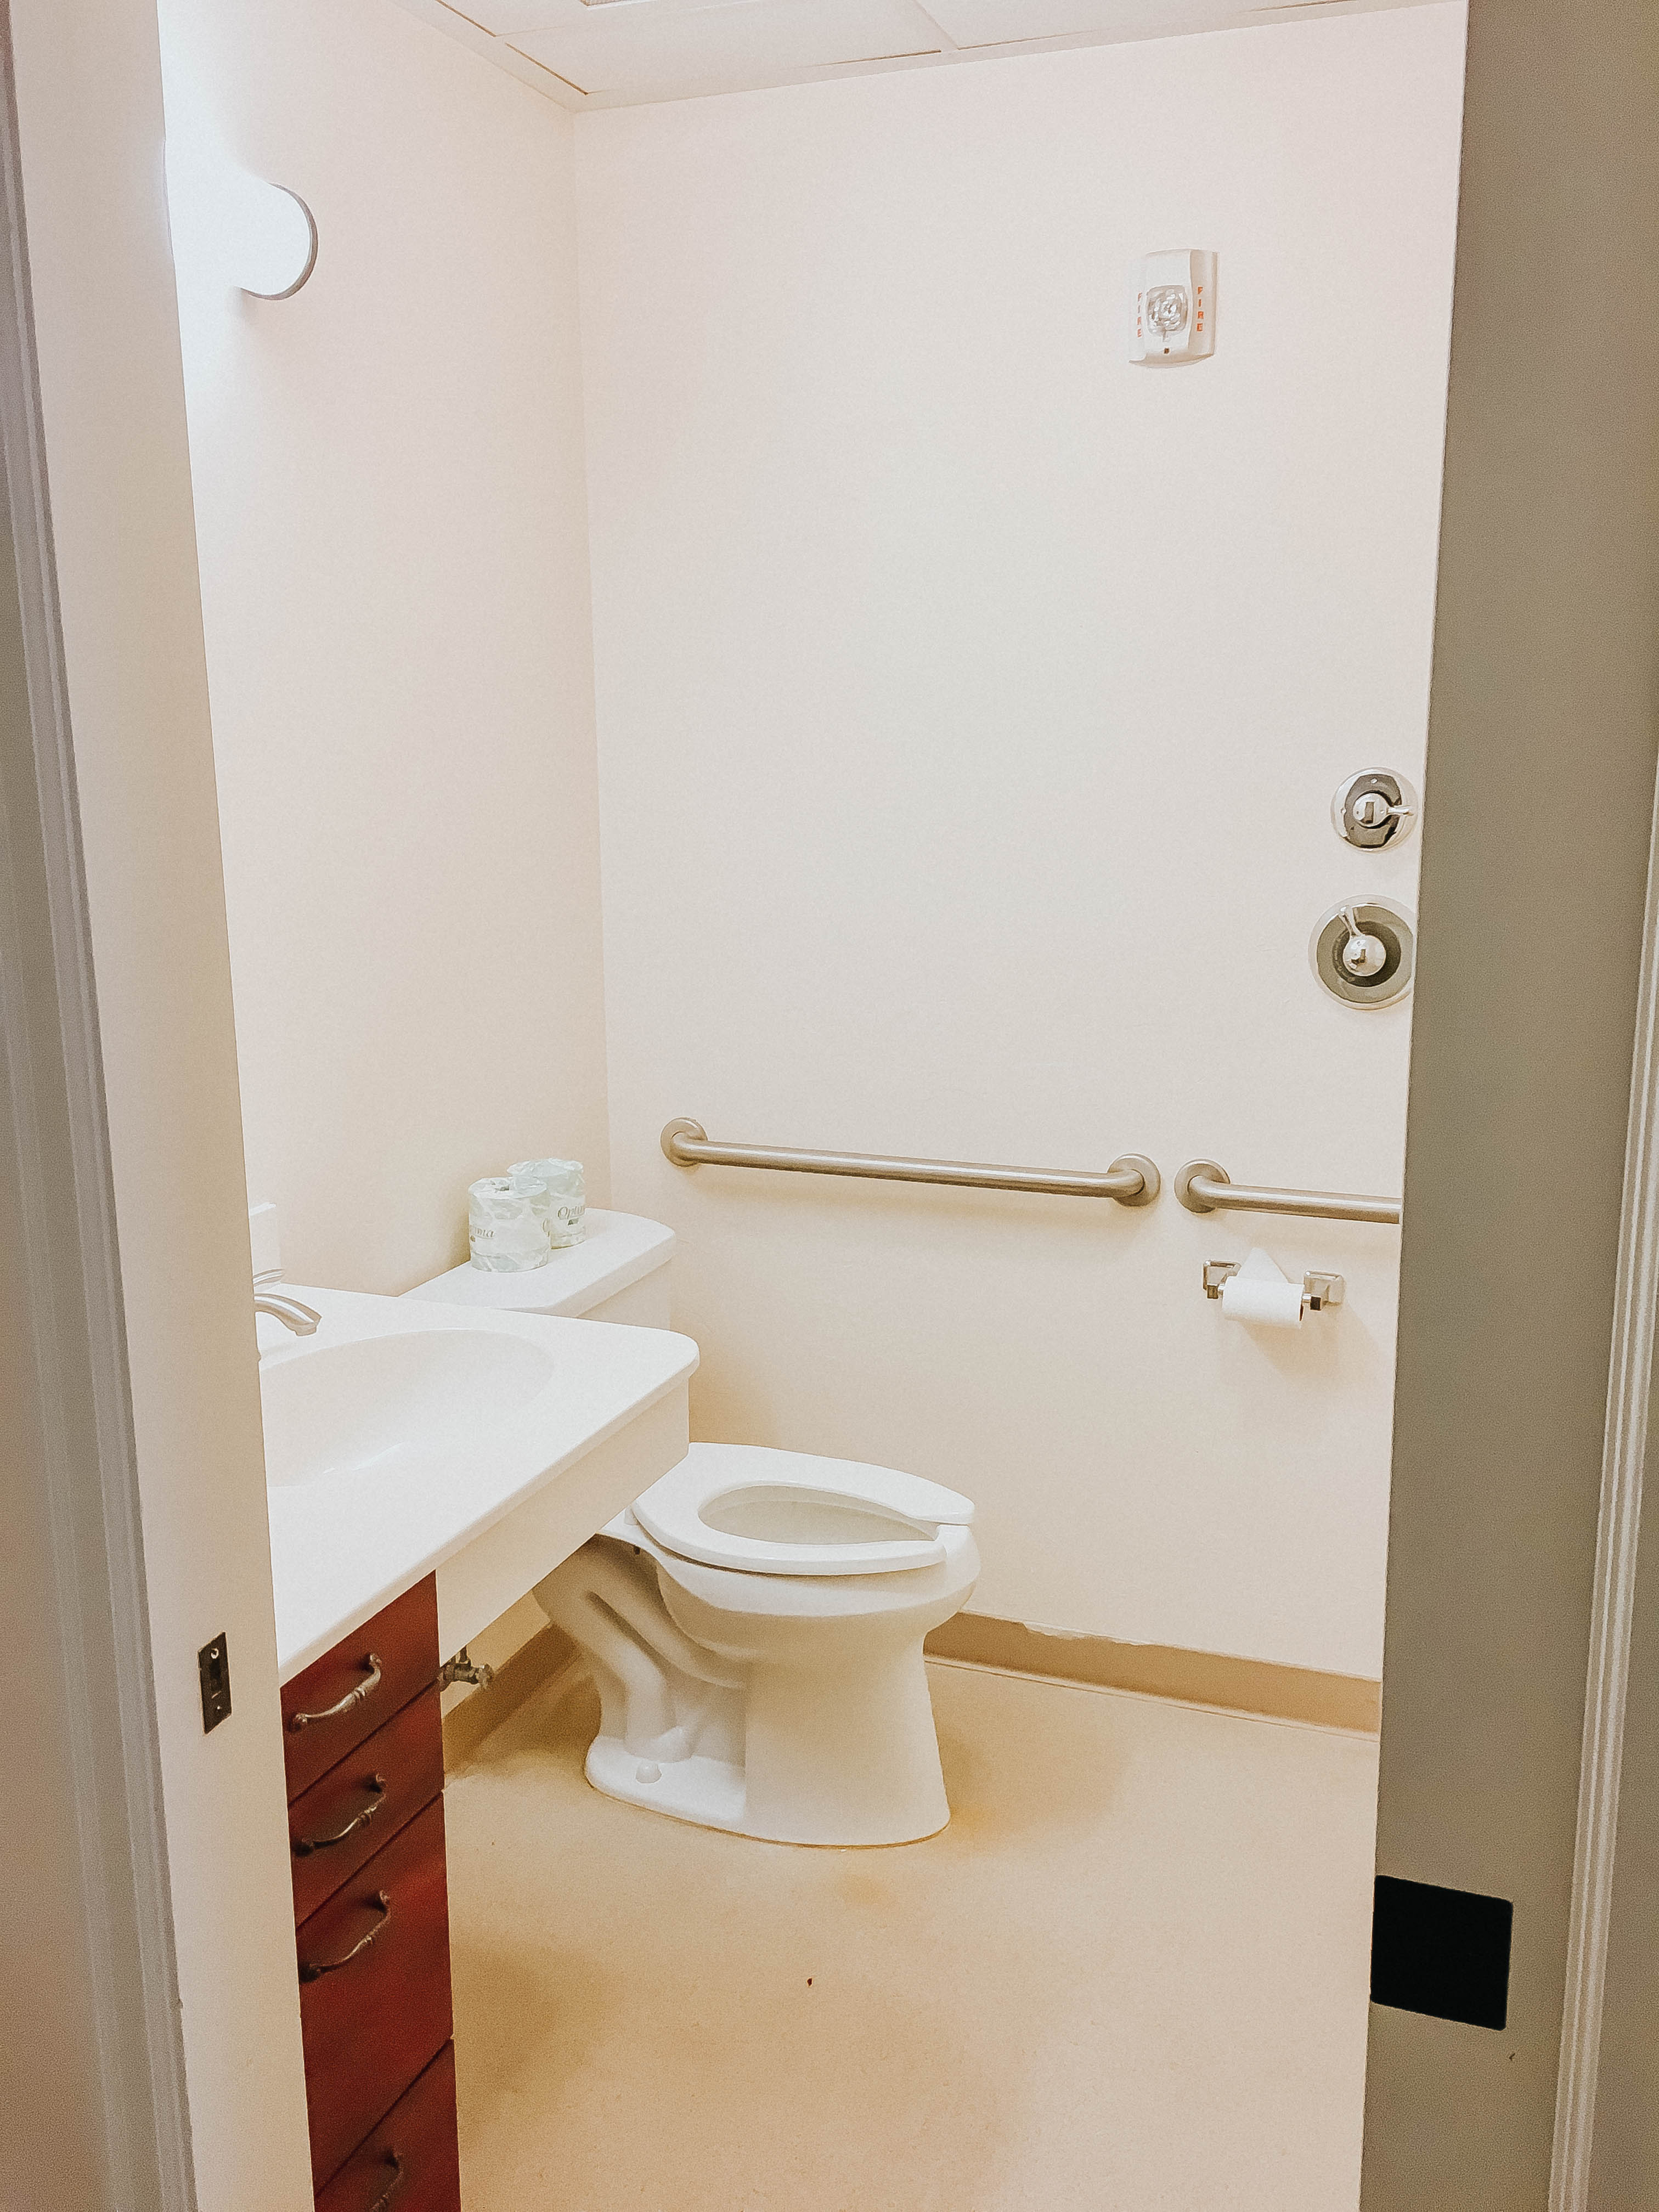 Tambree Meadows Assisted Living and Memory Care Bathroom